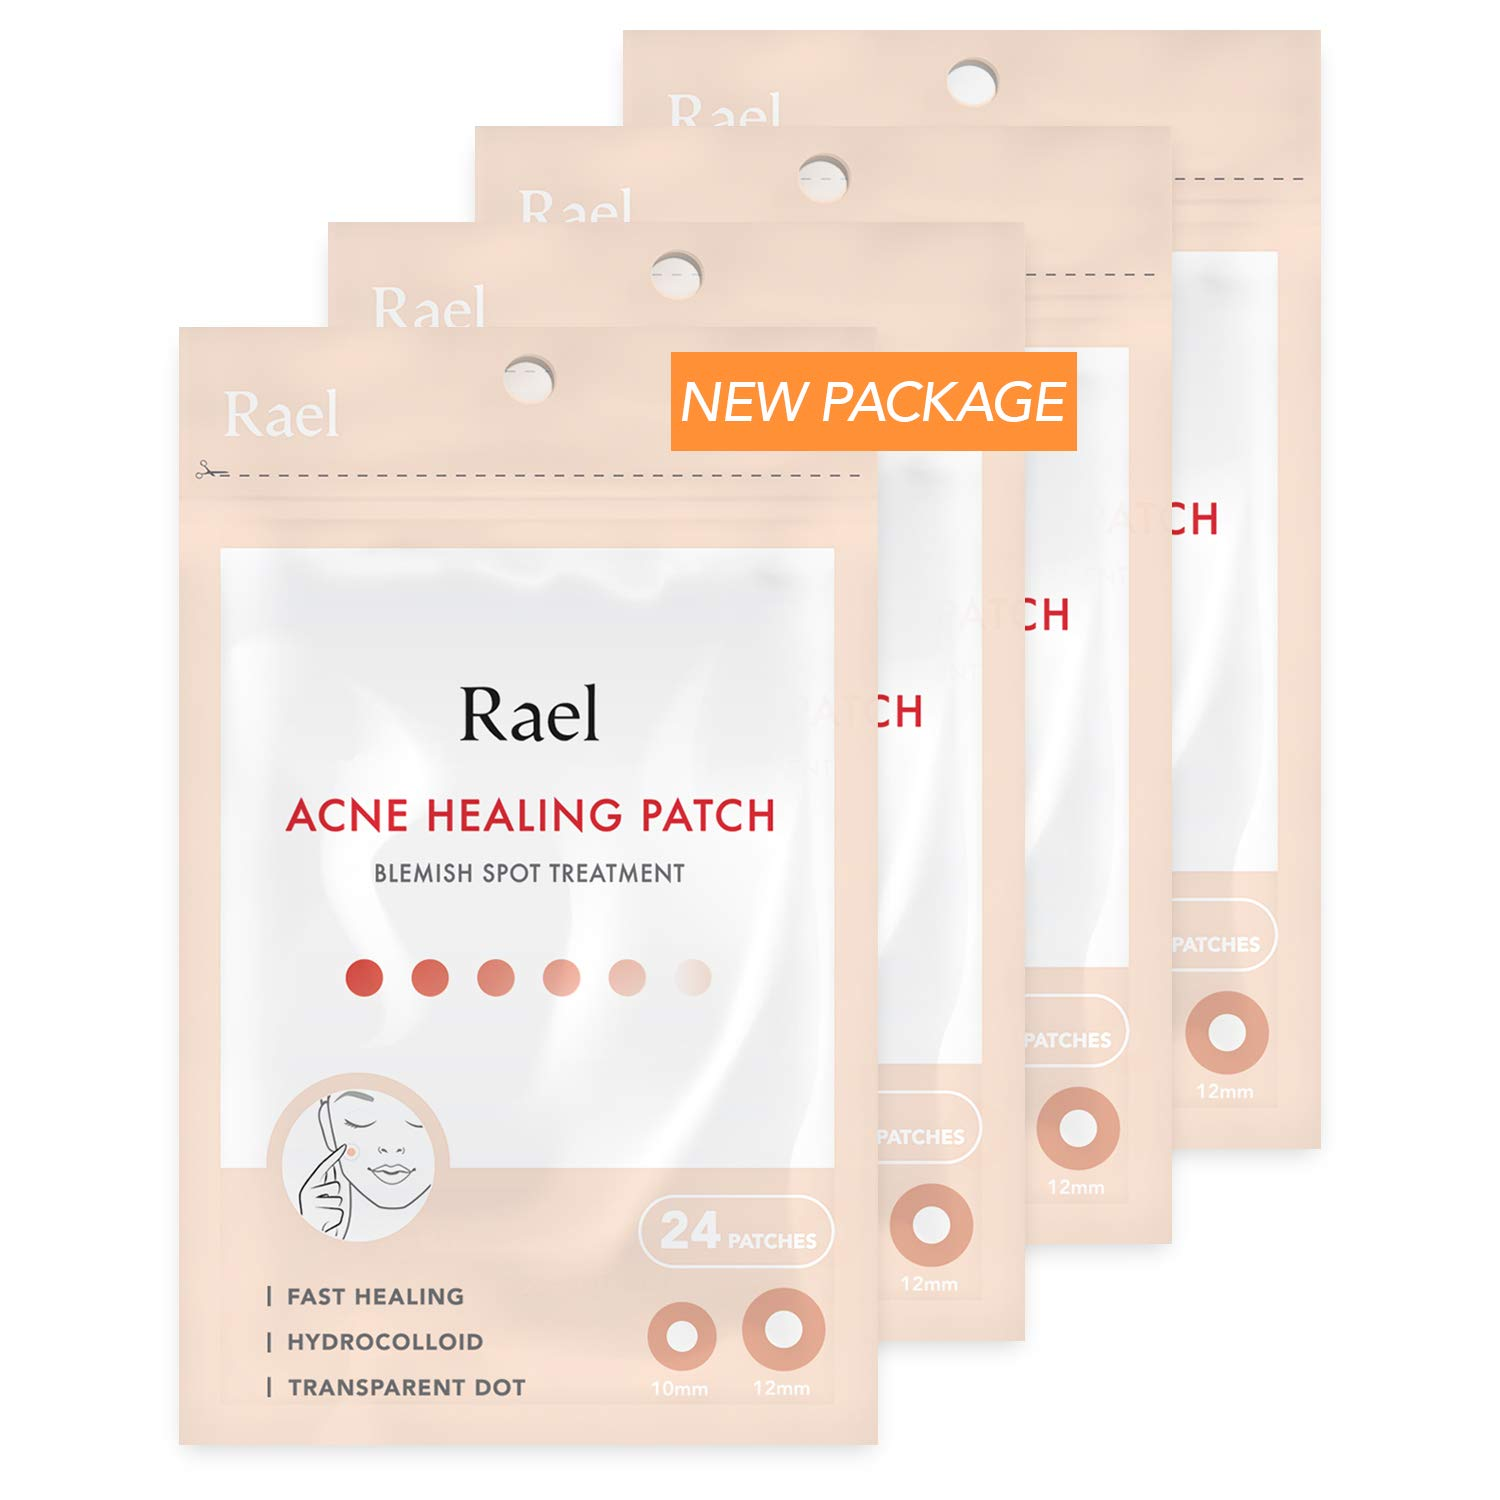 Rael Acne Pimple Healing Patch - Absorbing Cover, Invisible, Blemish Spot, Hydrocolloid, Skin Treatment, Facial Stickers, Two Sizes, Blends in with skin (96 Patches, 4Pack) by Rael